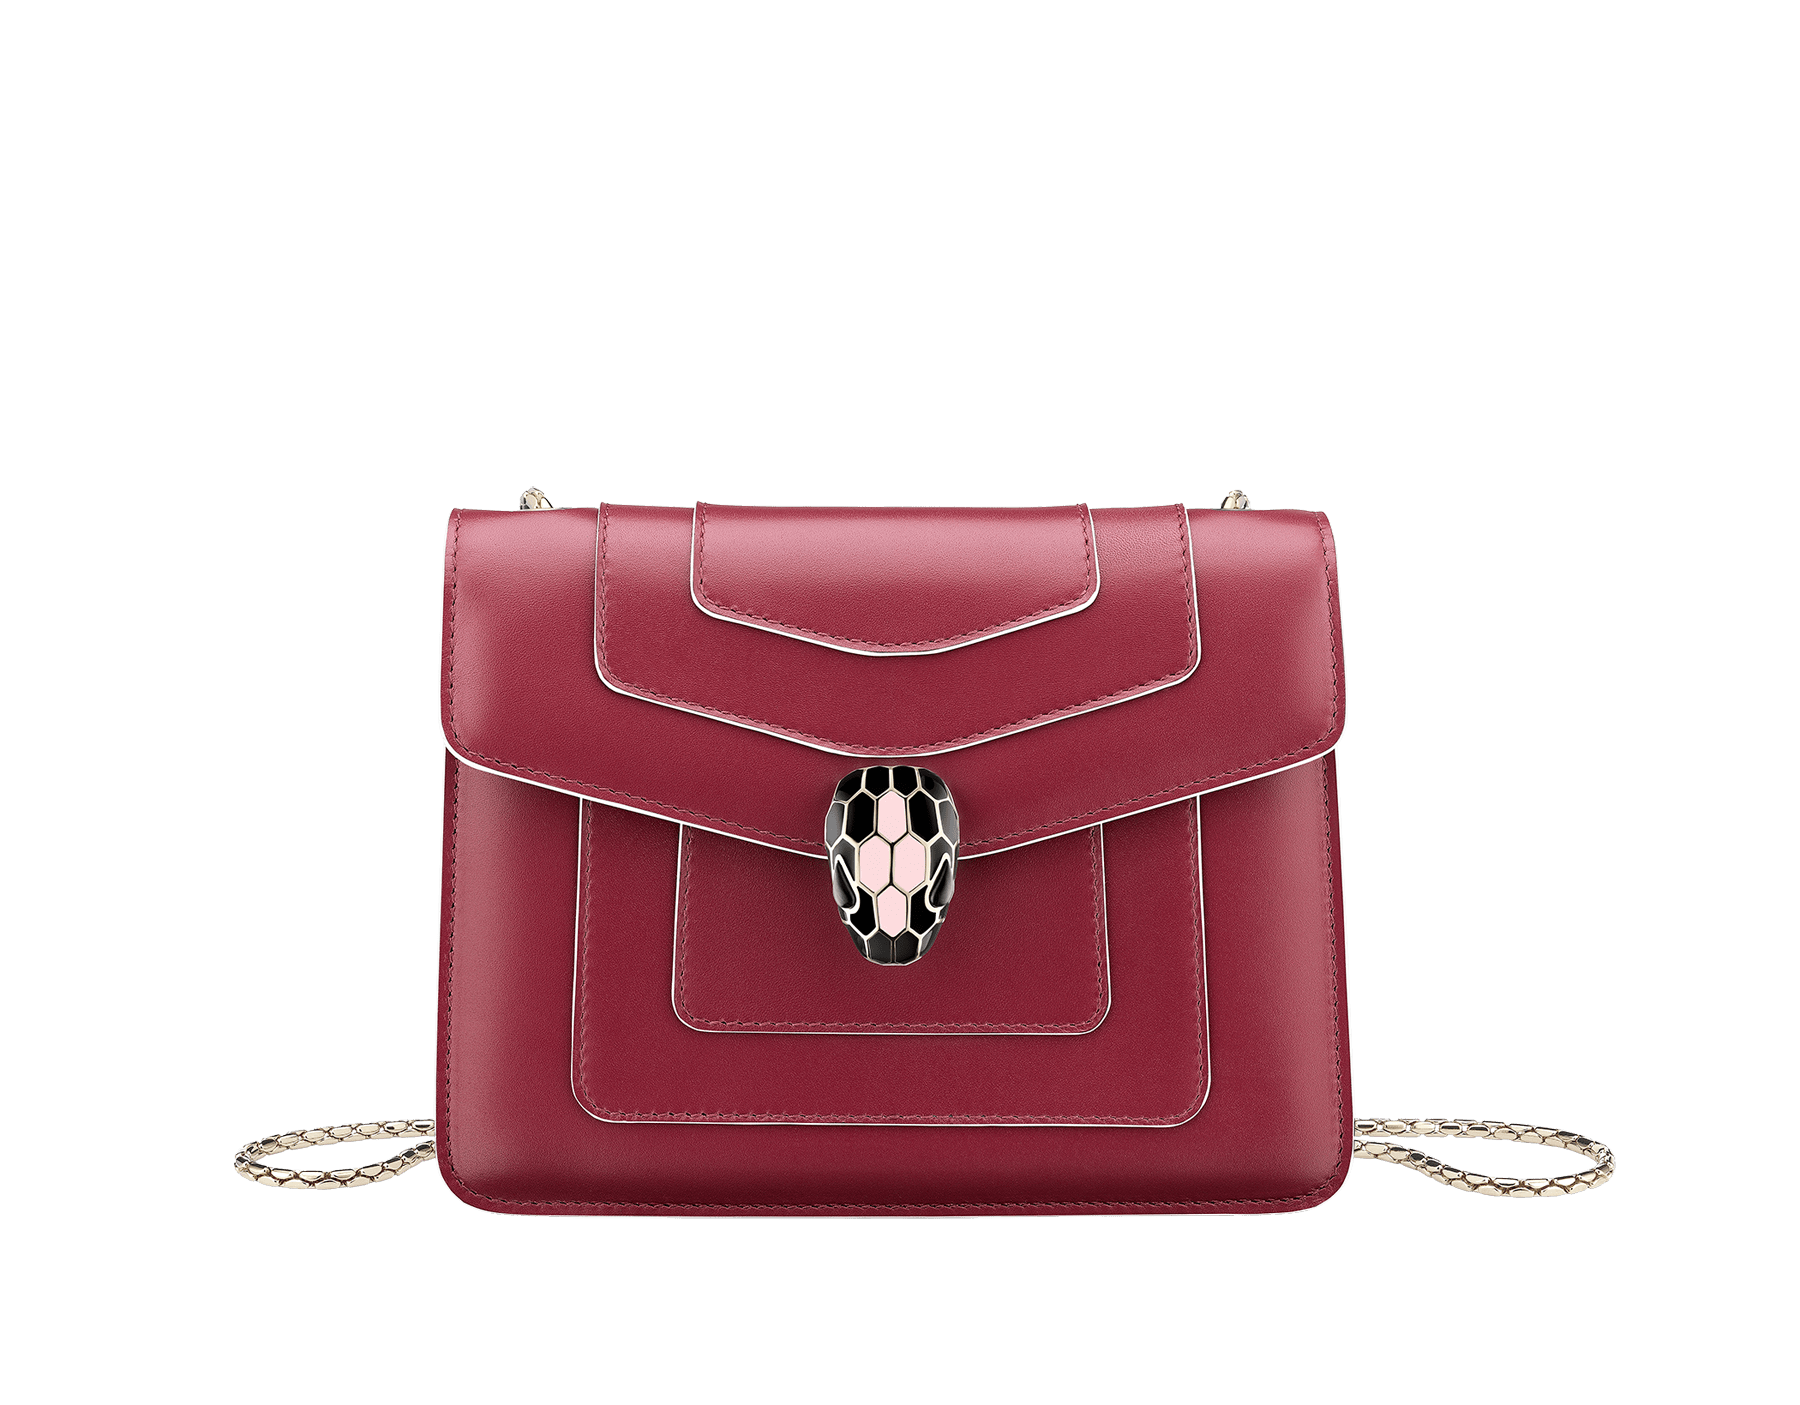 Serpenti Forever crossbody bag in Roman garnet calf leather, with rosa di francia calf leather sides. Iconic snakehead closure in light gold plated brass embellished with black and white enamel and green malachite eyes. 289035 image 1